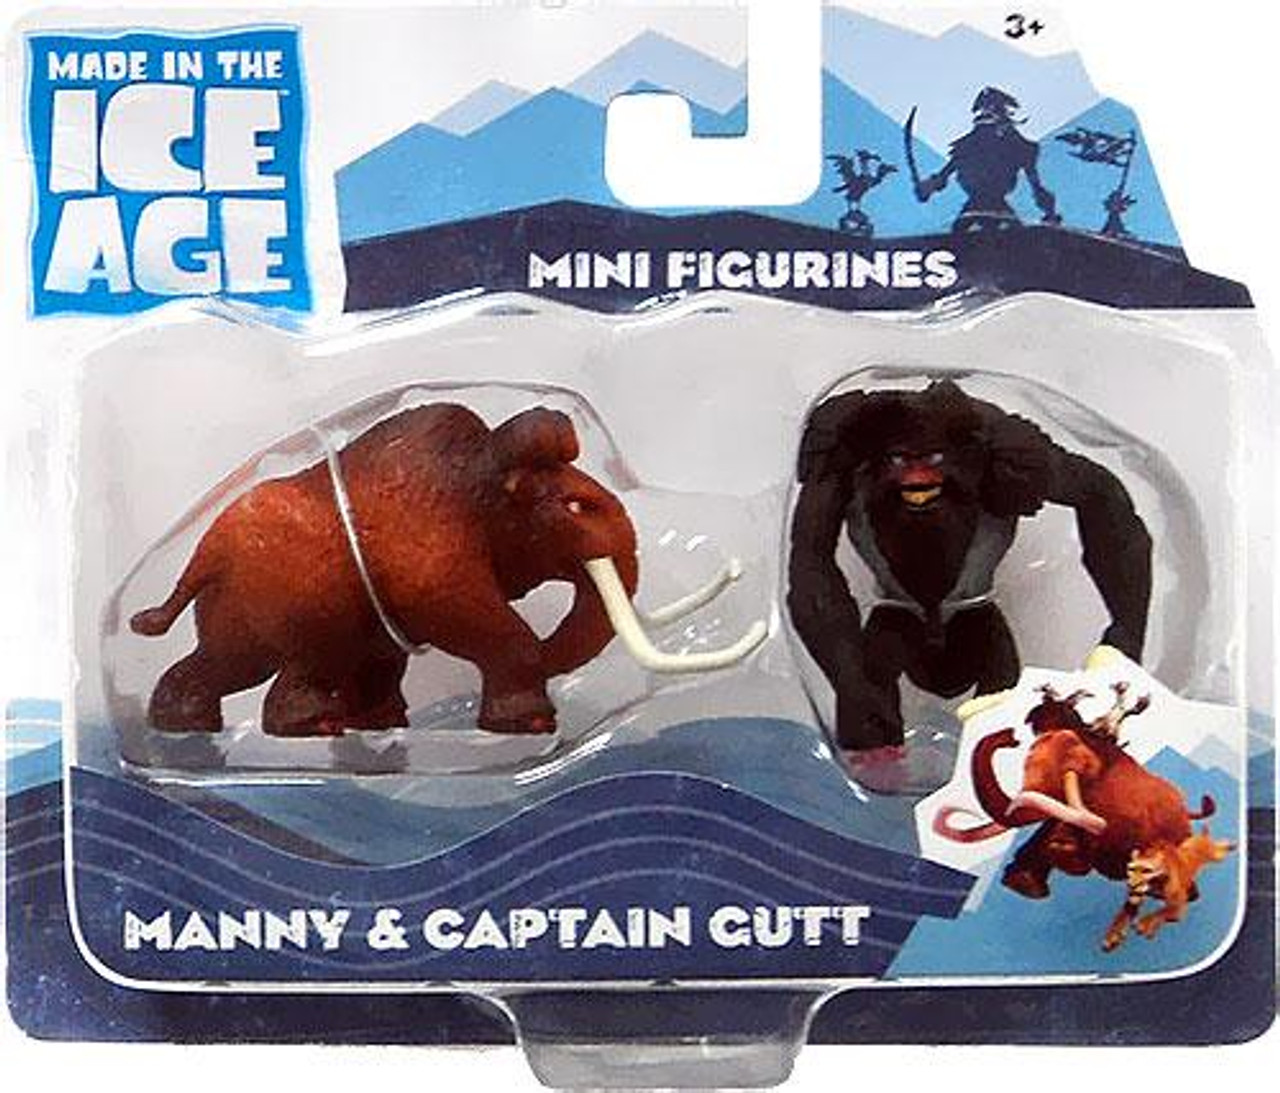 Ice Age Continental Drift Manny & Captain Gutt Mini Figure 2-Pack